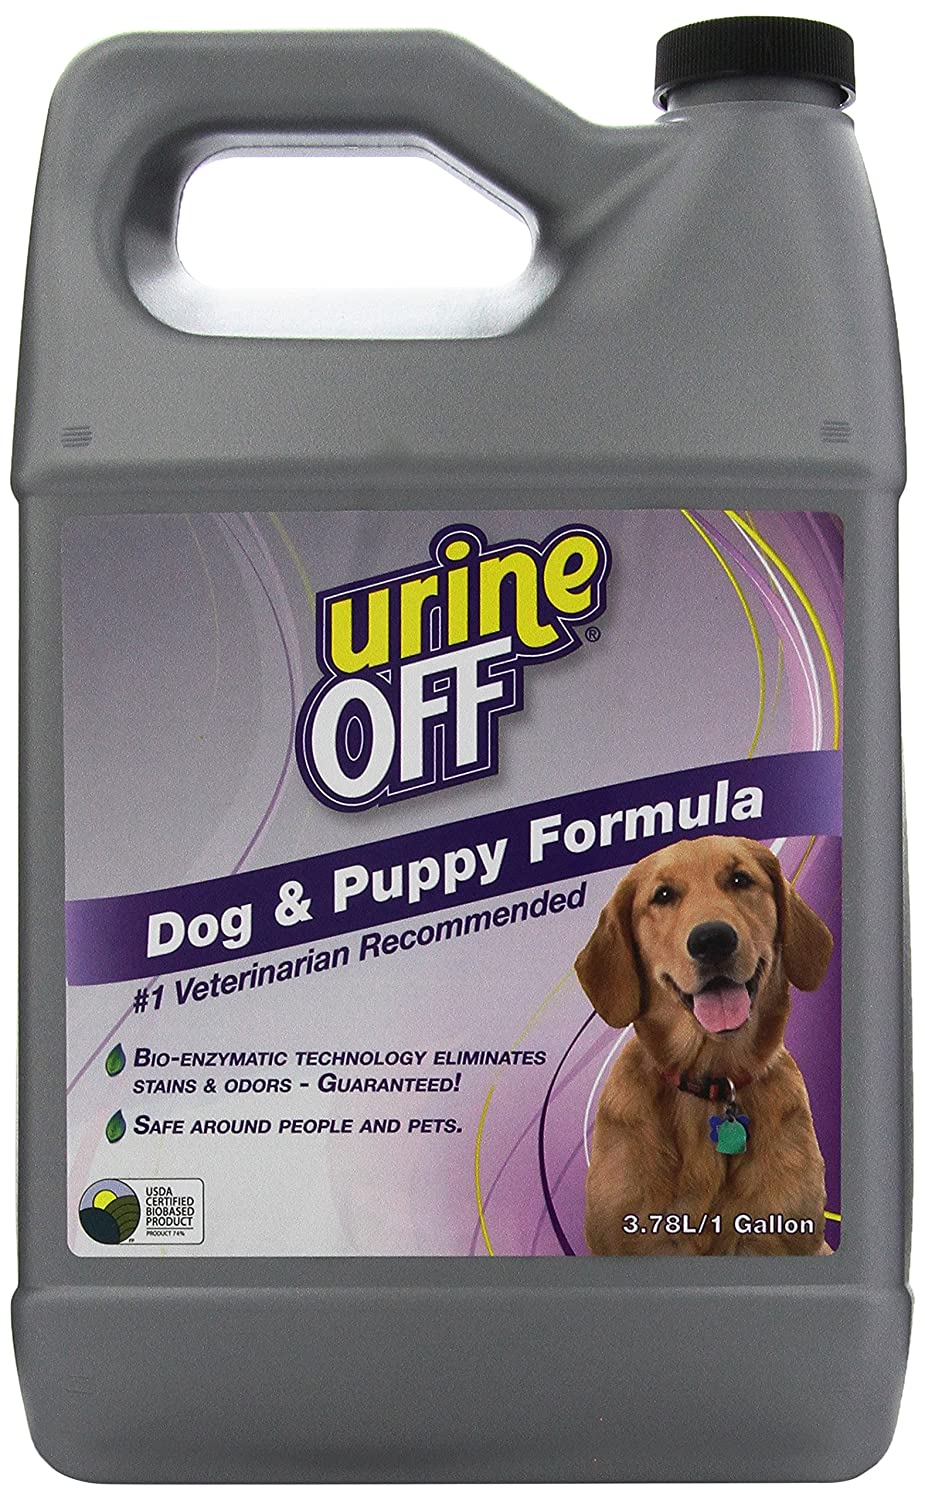 Urine Off Odor and Stain Remover Dog Formula, 1 Gallon by Urine Off 6009